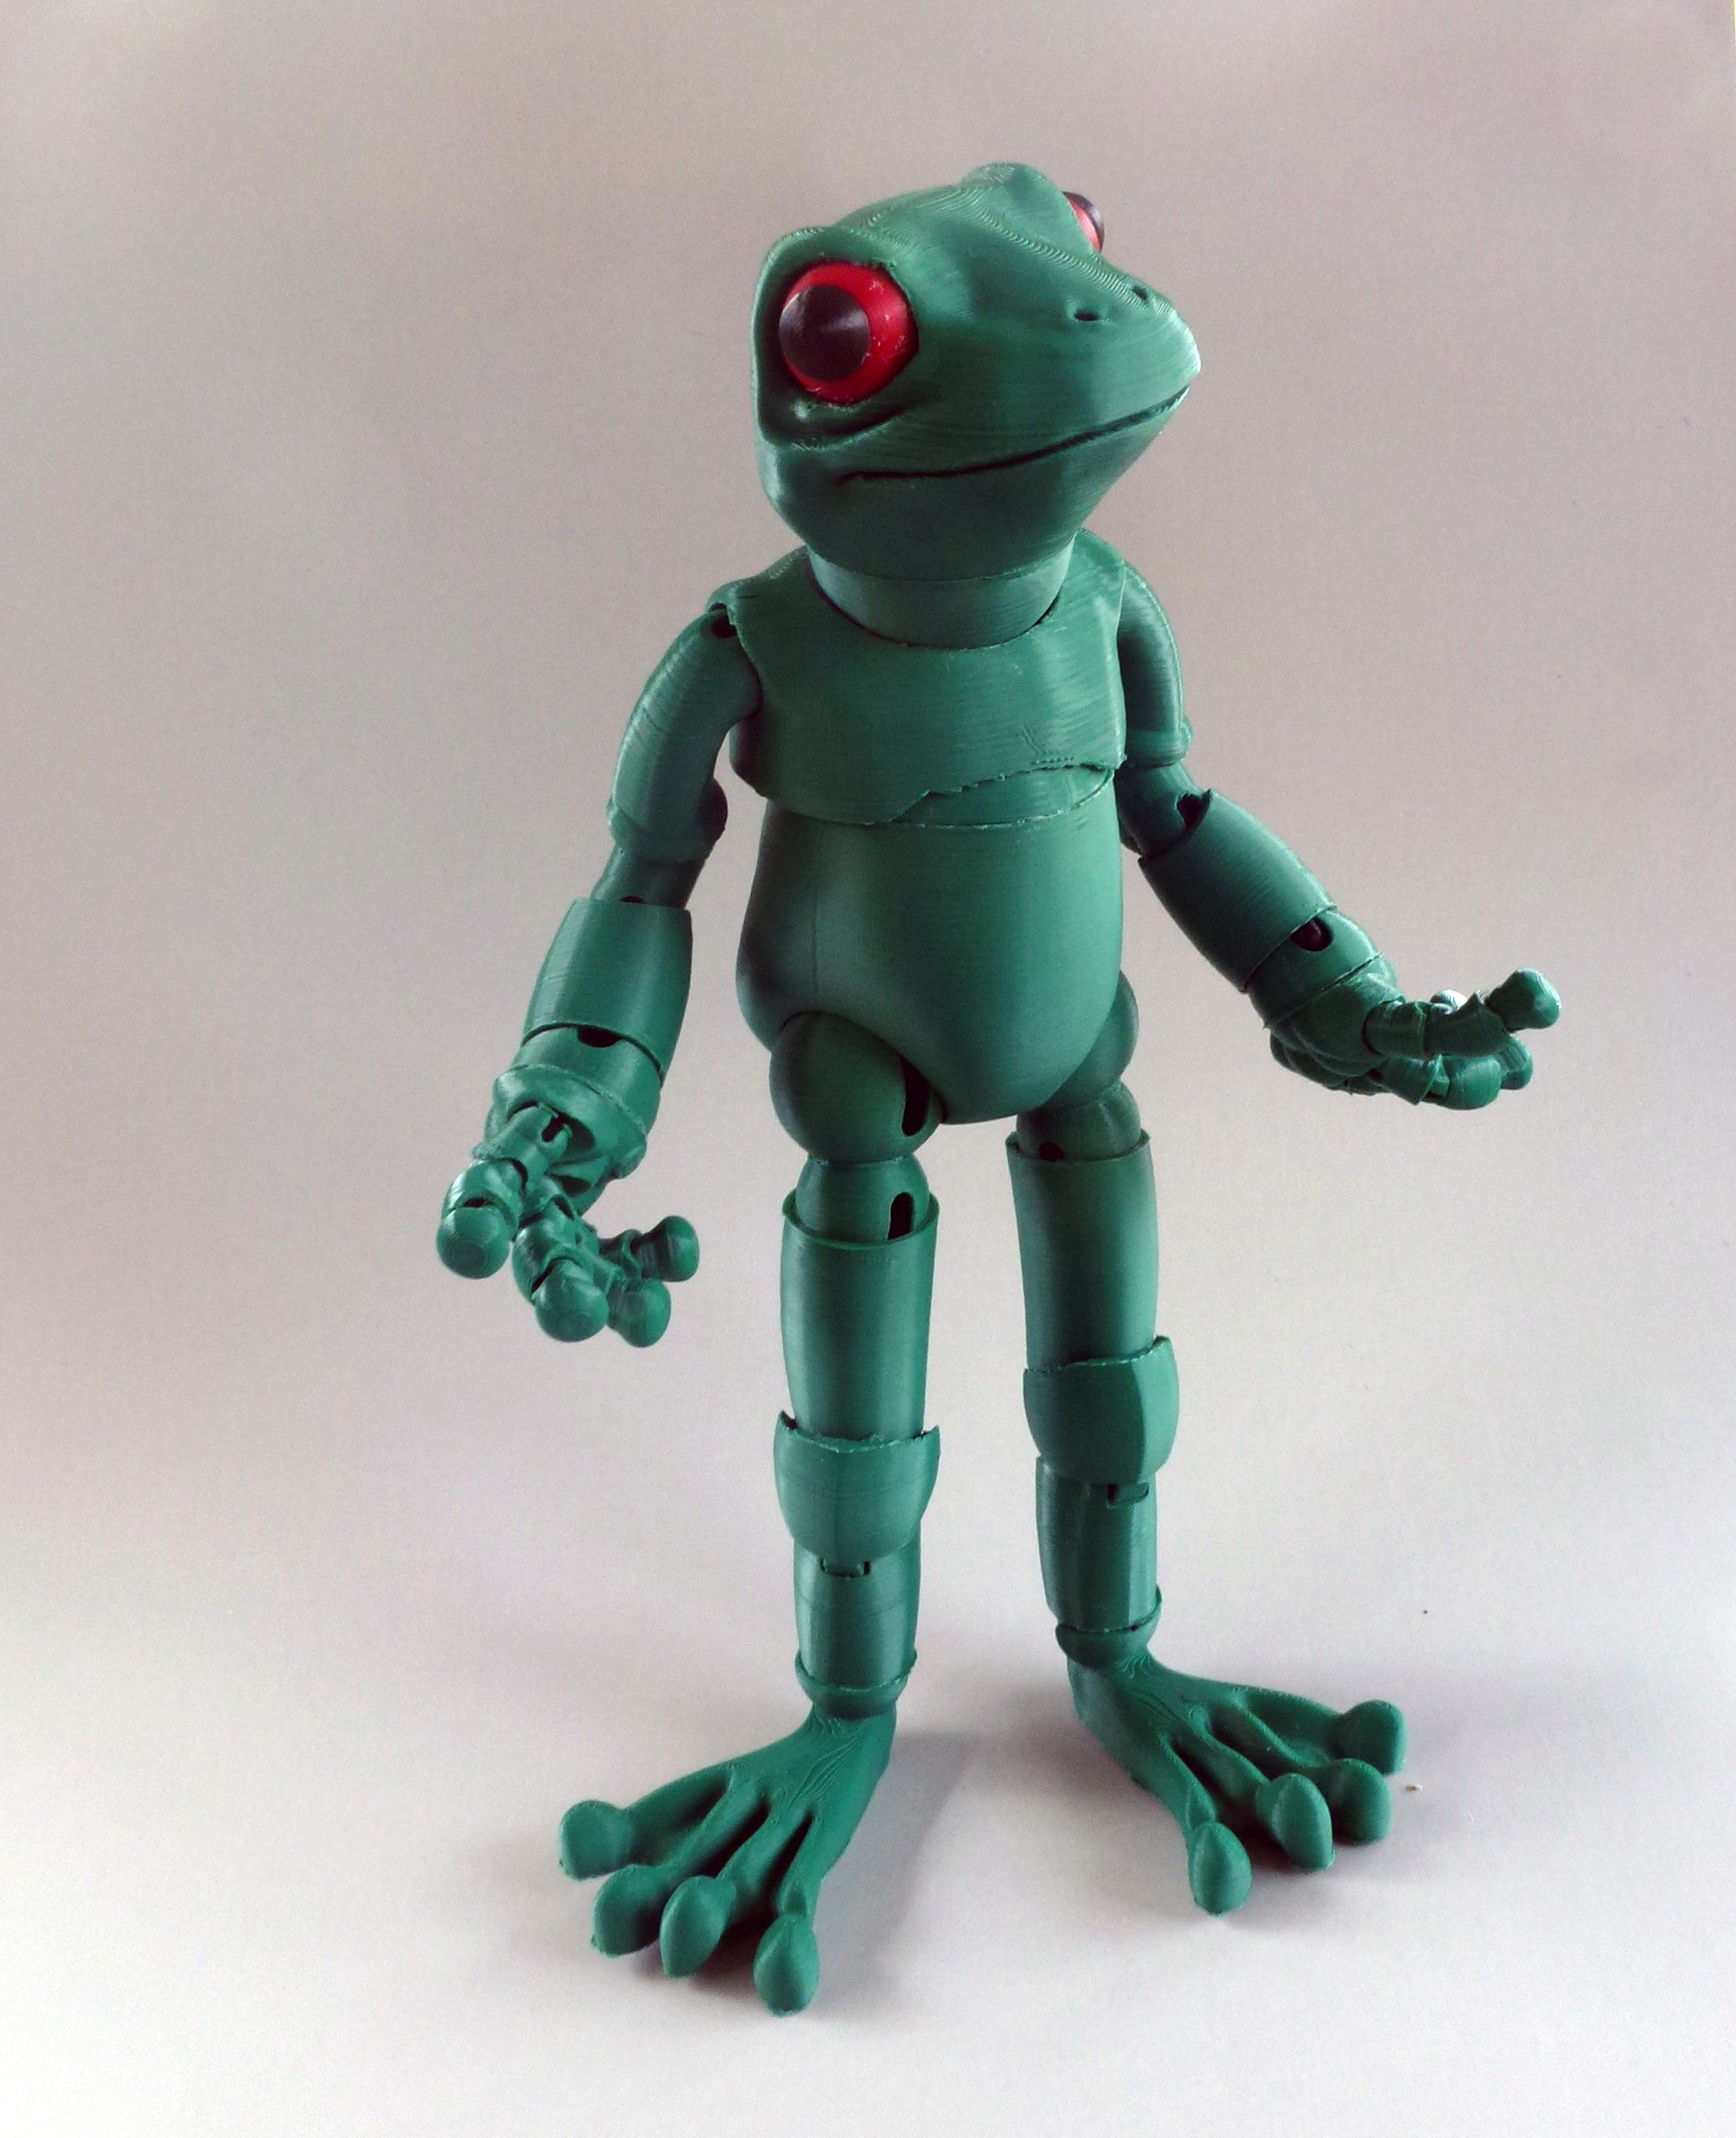 Popular 3D Printed Froggy: the 3D printed ball-jointed frog doll by Louise  LT56